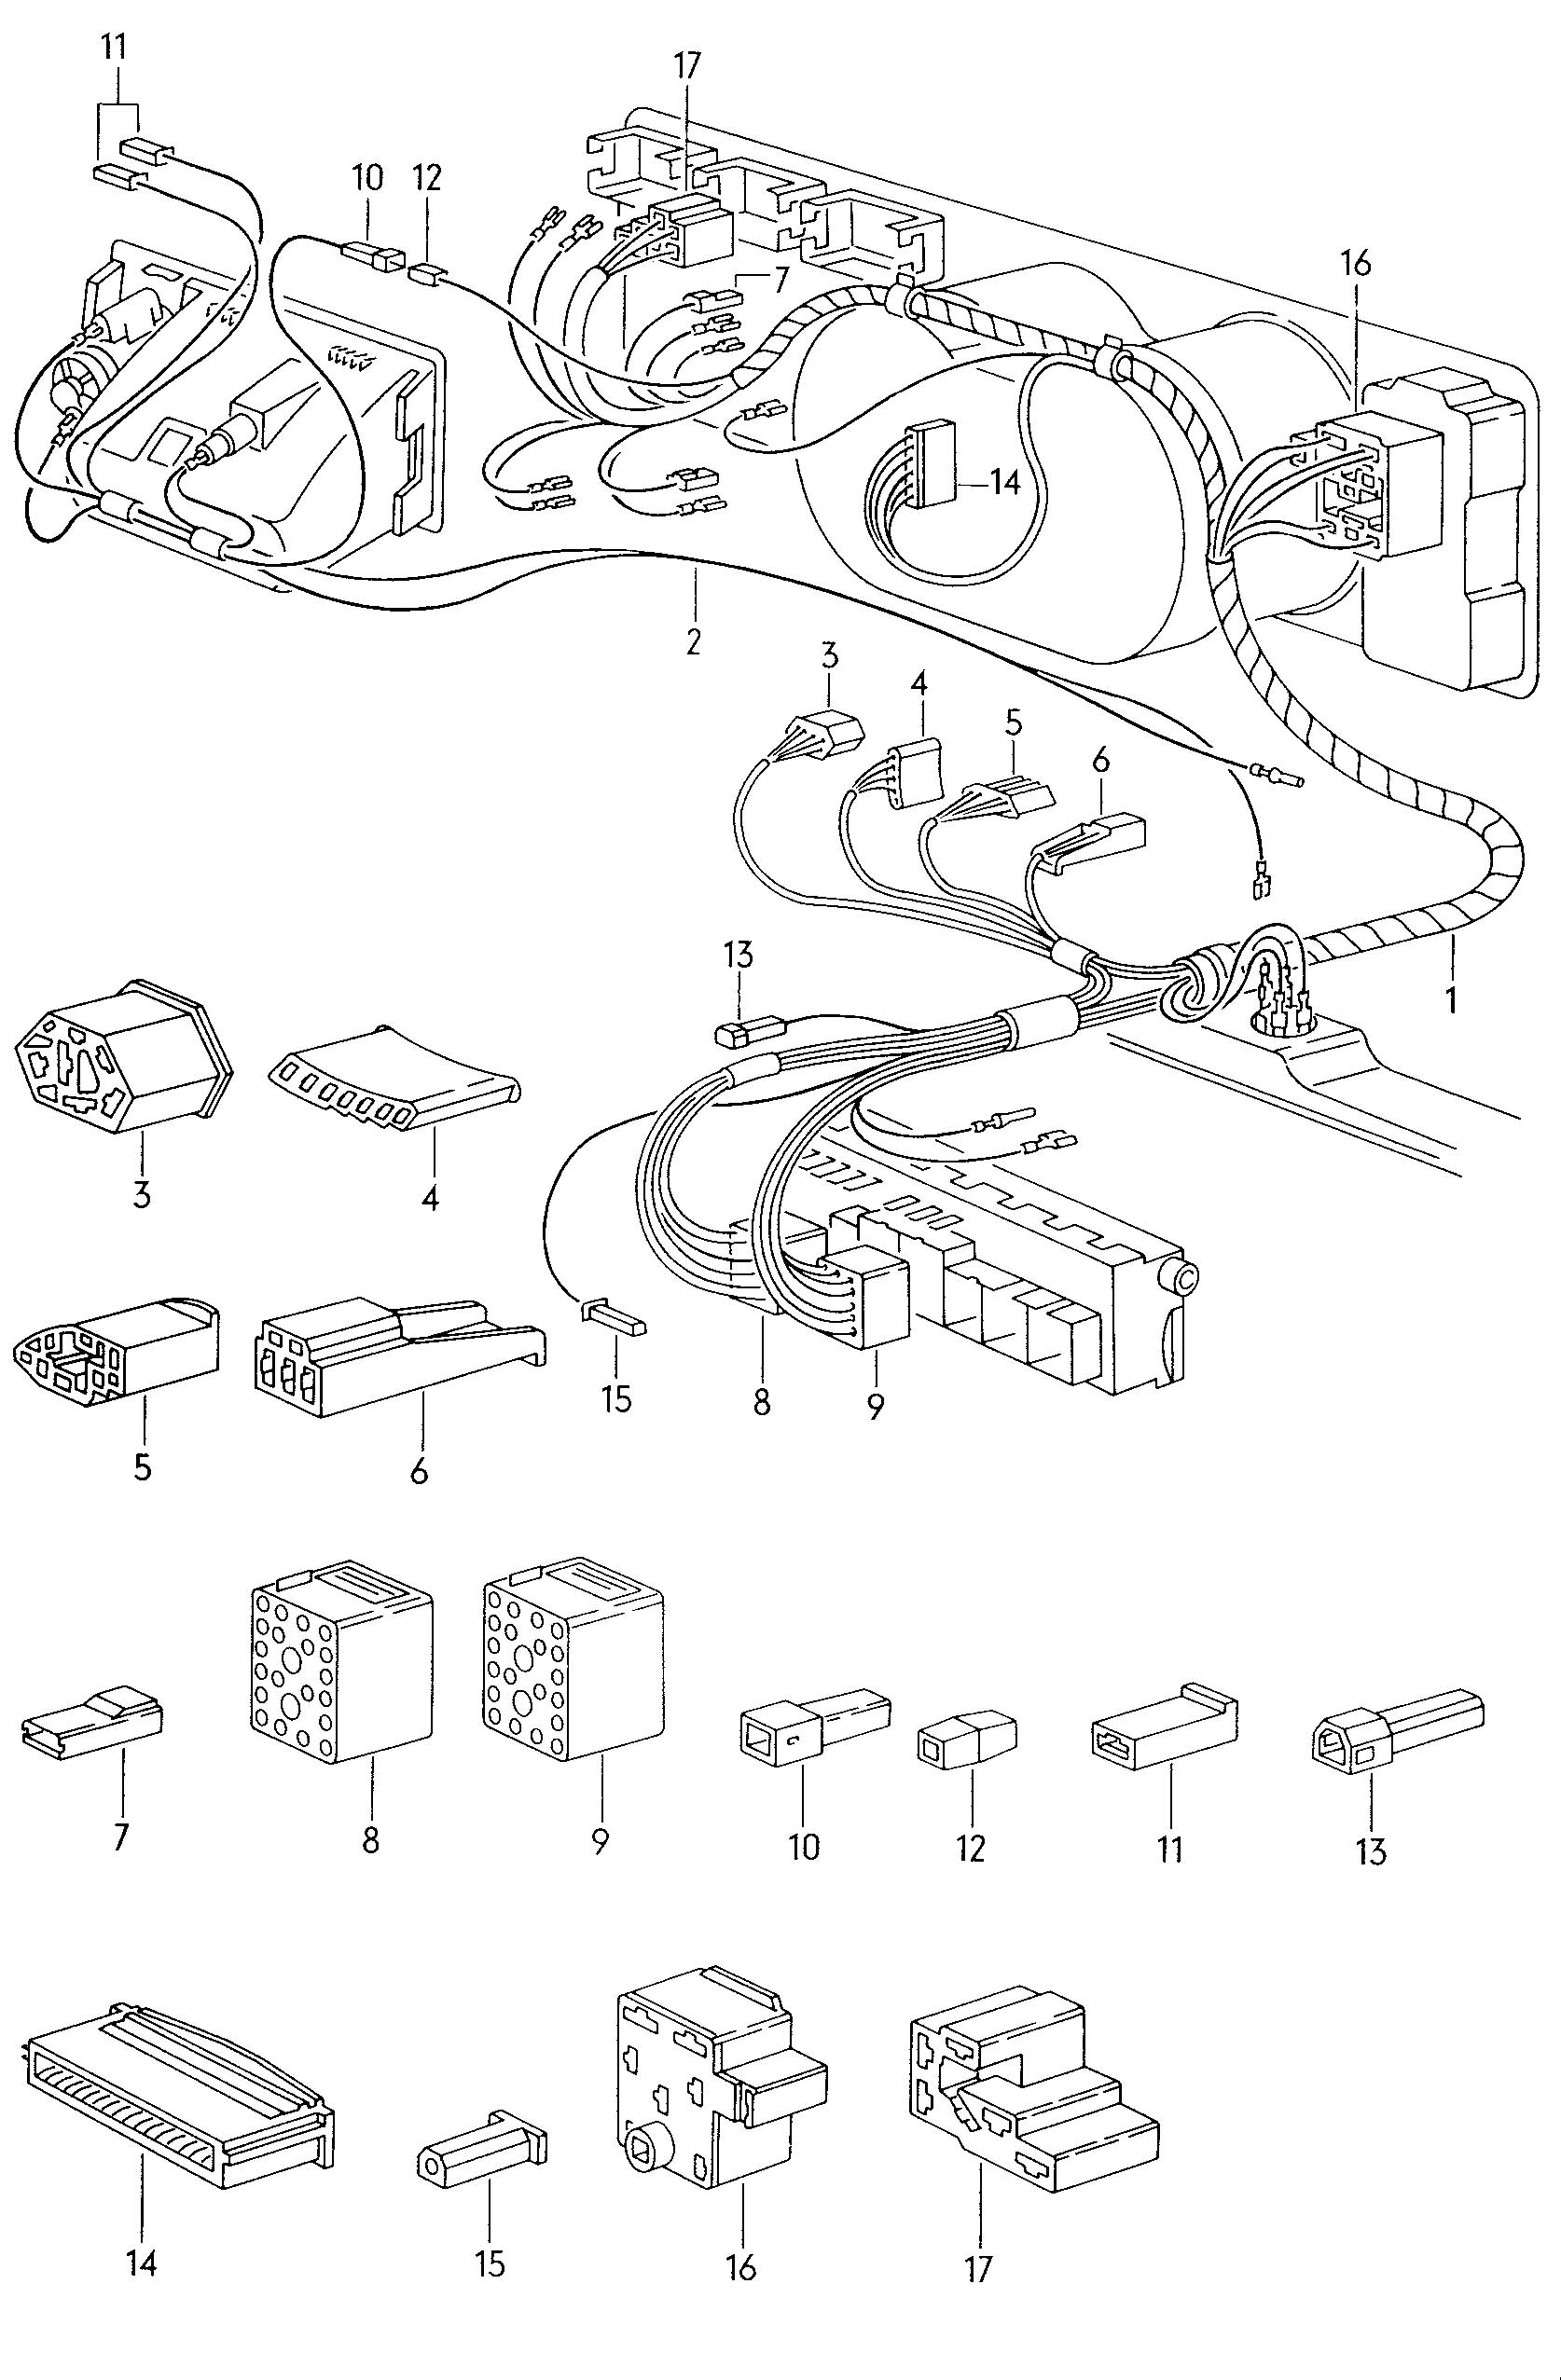 2010 Ford Fusion Engine Compartment Fuse Box Diagram. Ford